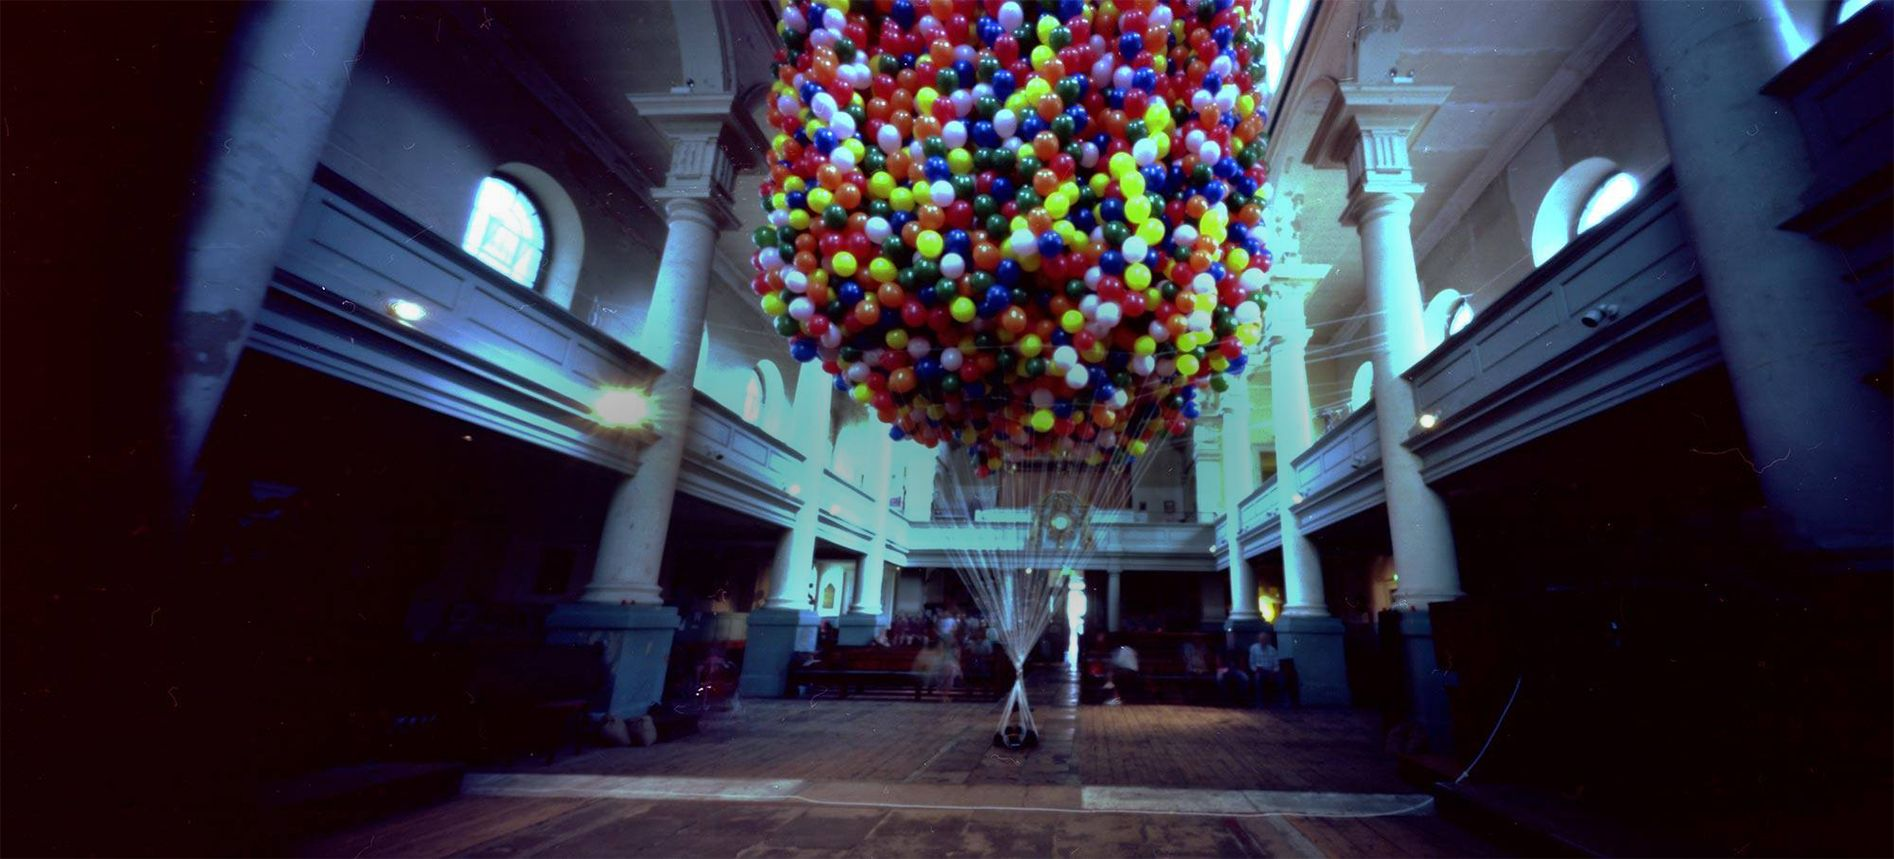 Artist is lifted into the air by hellium balloons